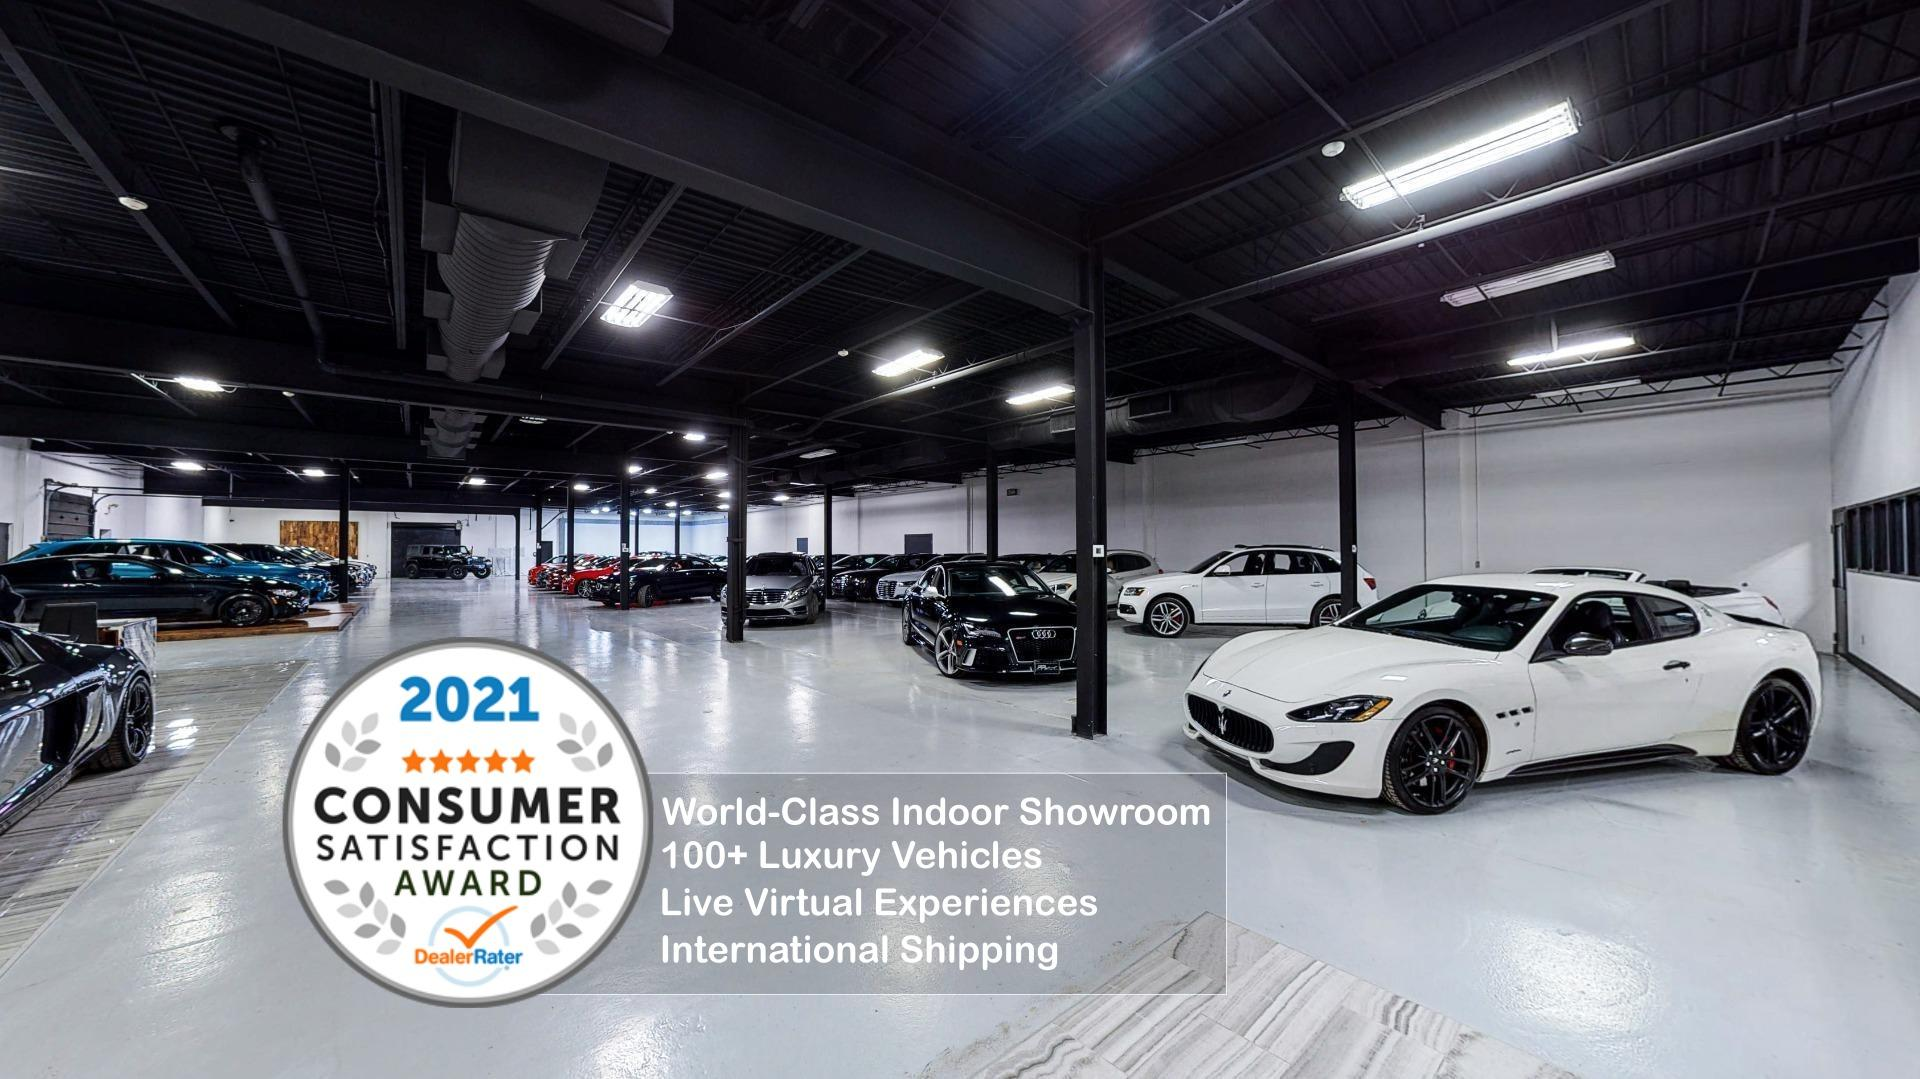 Used 2015 Chevrolet Camaro LT for sale $17,495 at Perfect Auto Collection in Akron OH 44310 3